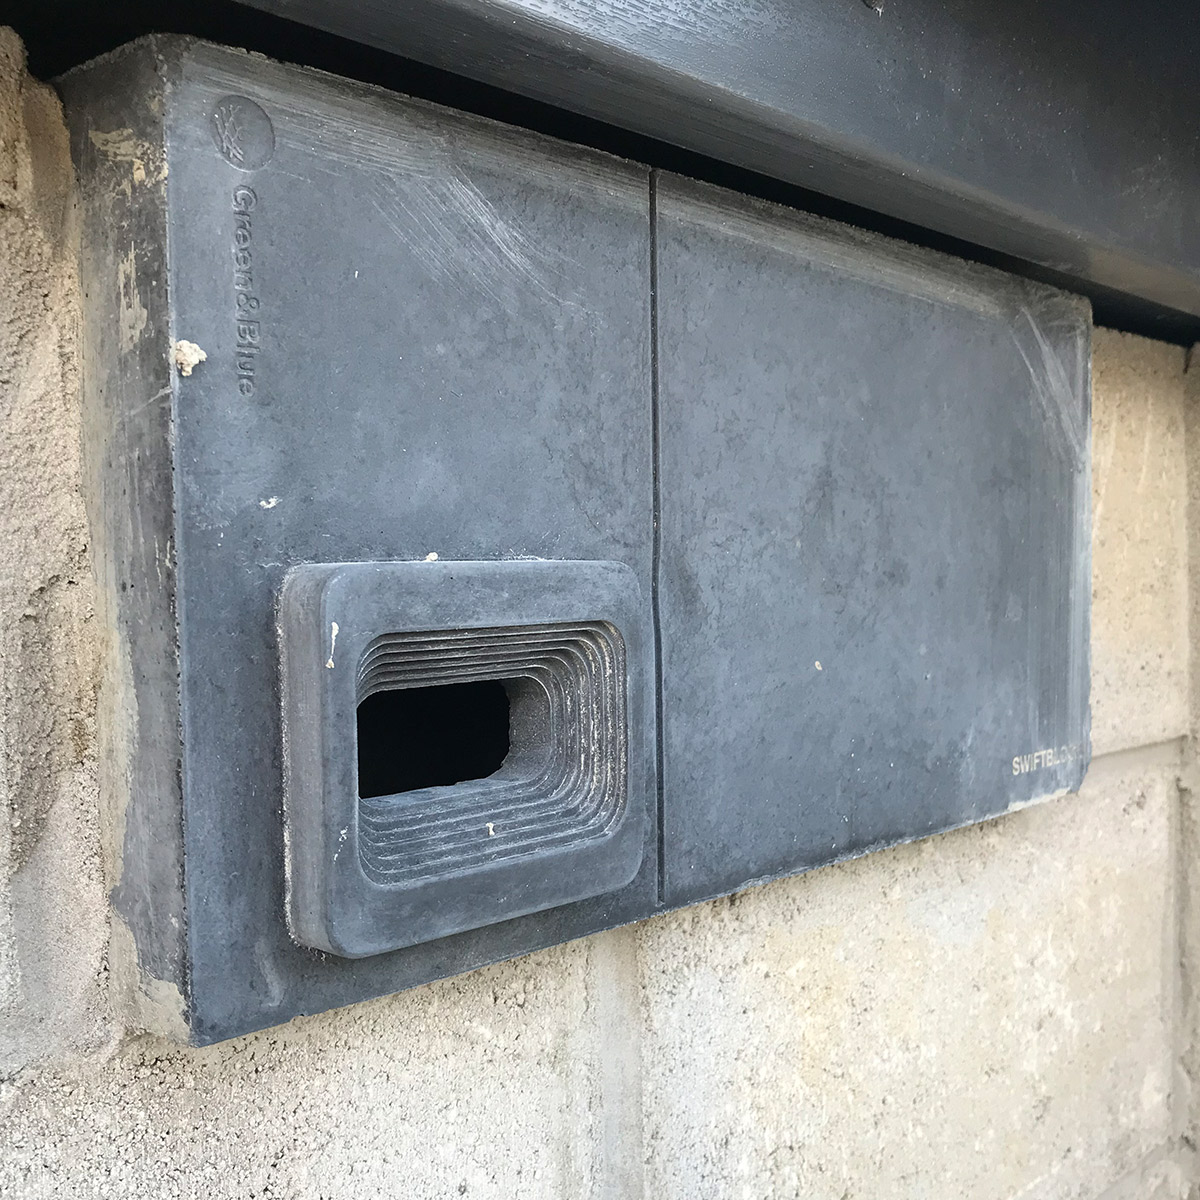 charcoal swift block being installed